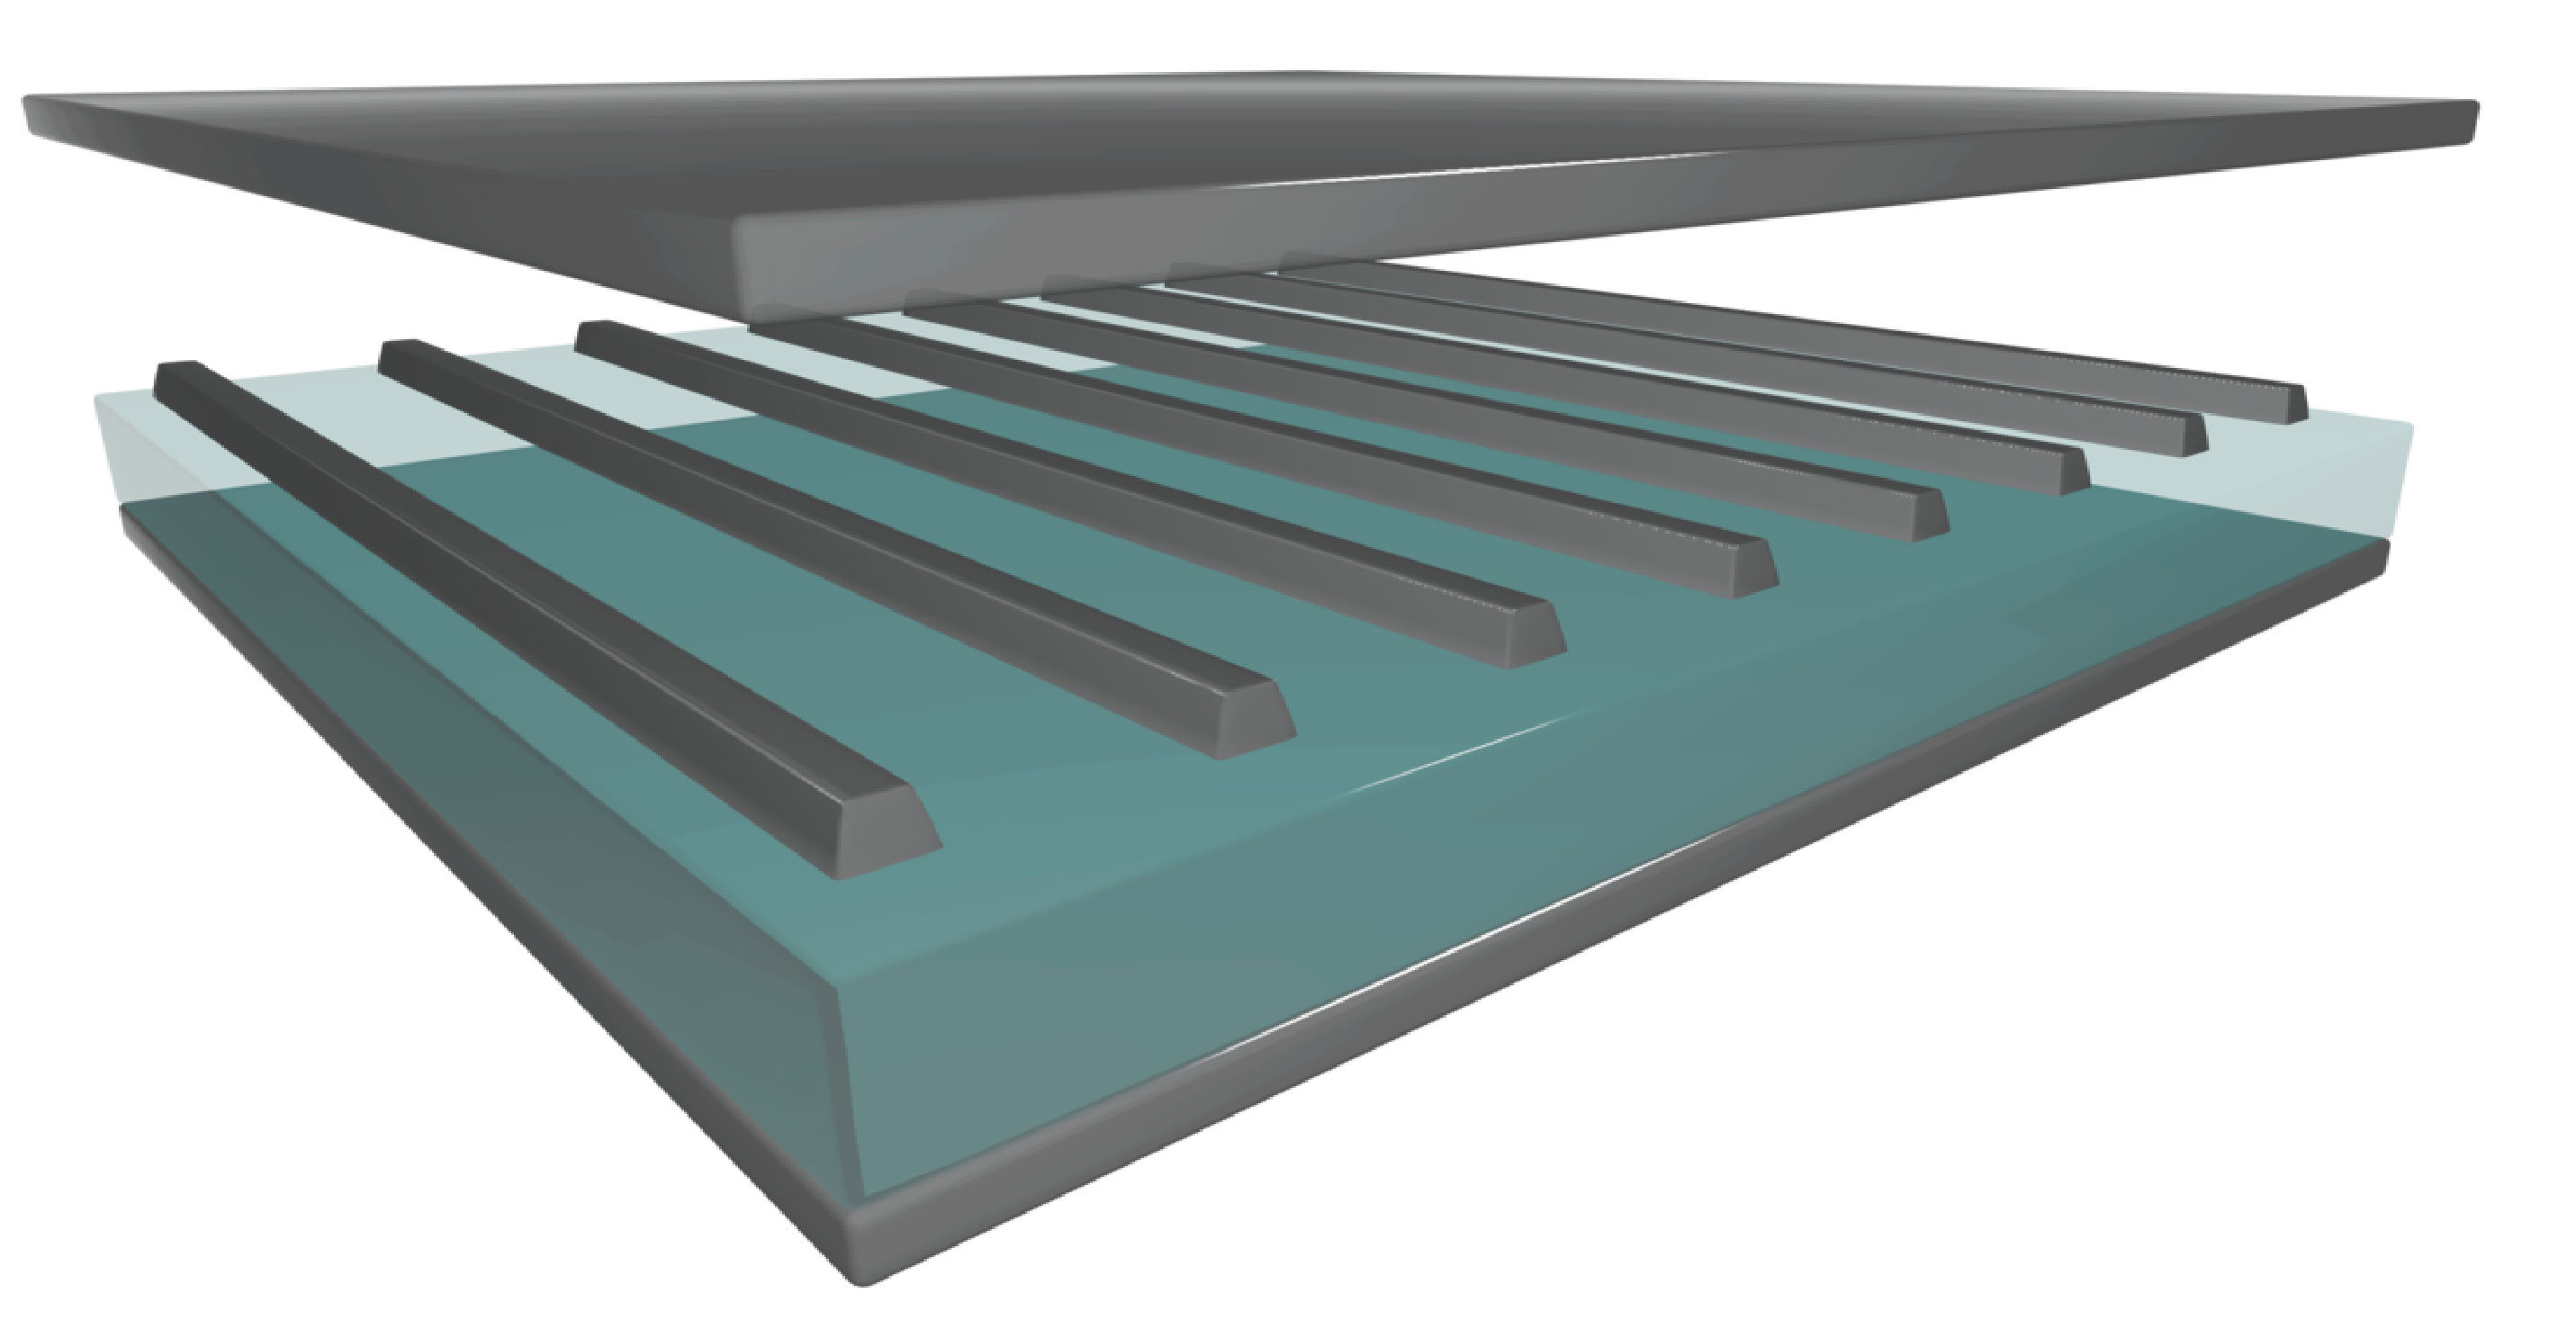 New Ultrathin Optic Cavities Allow Simultaneous Color Production On Circuit Wizard Is An Electronic Design Program Produced By Wave Nanocavities With Embedded Silver Strips Have Streamlined And Therefore Broadened Possible Bandwidth For Both Todays